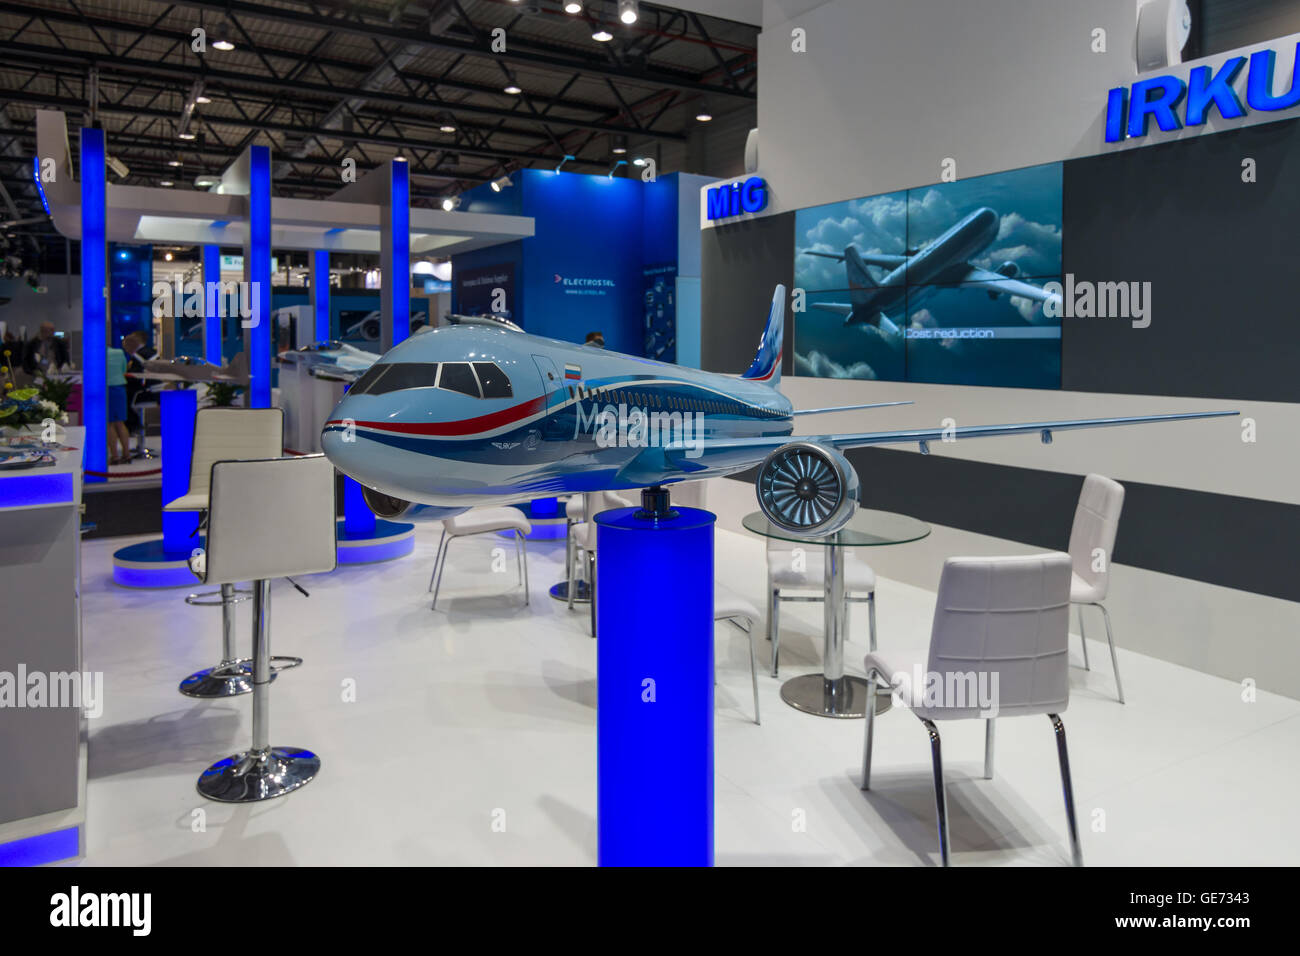 The stand of Unated Aircraft Corporation (Russia). Model of Russian jet airliner Irkut MC-21. - Stock Image